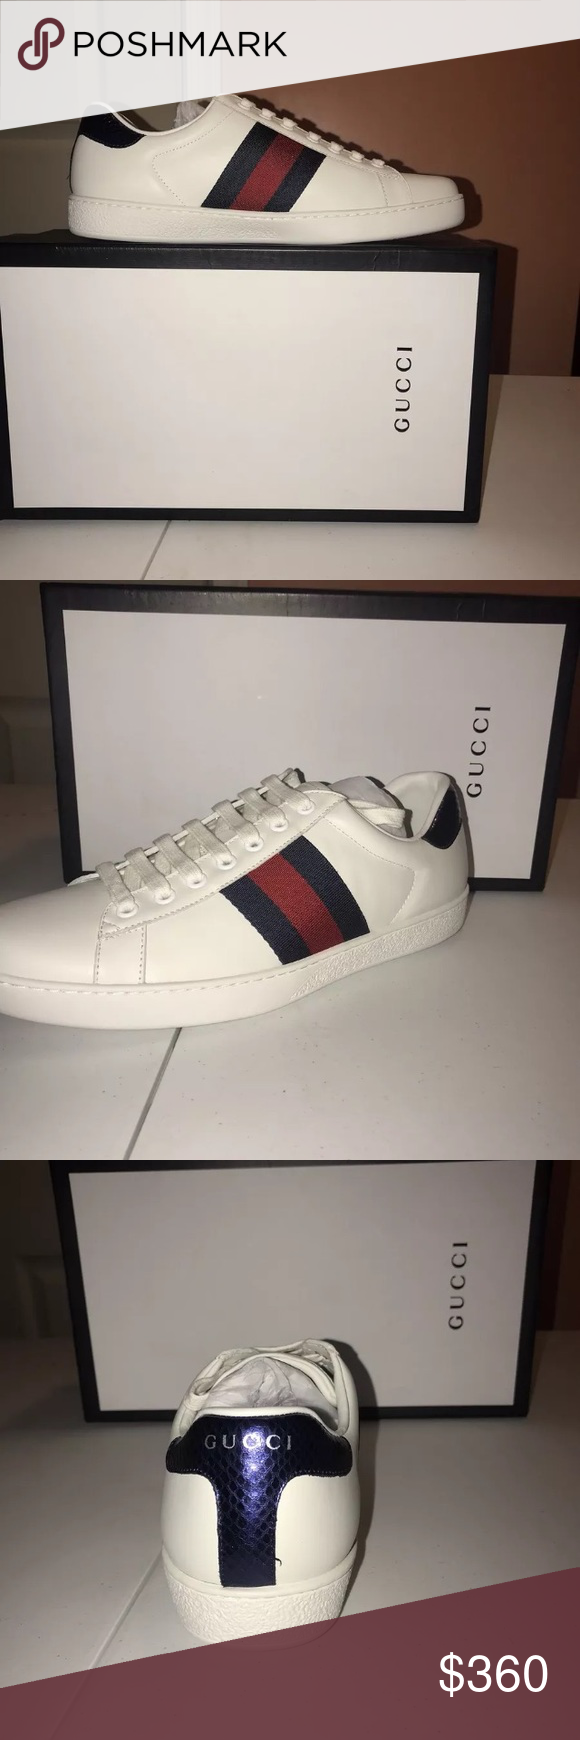 0899b3a934e Gucci ace sneakers Best deals here 734-707-9623 I have way more shoes